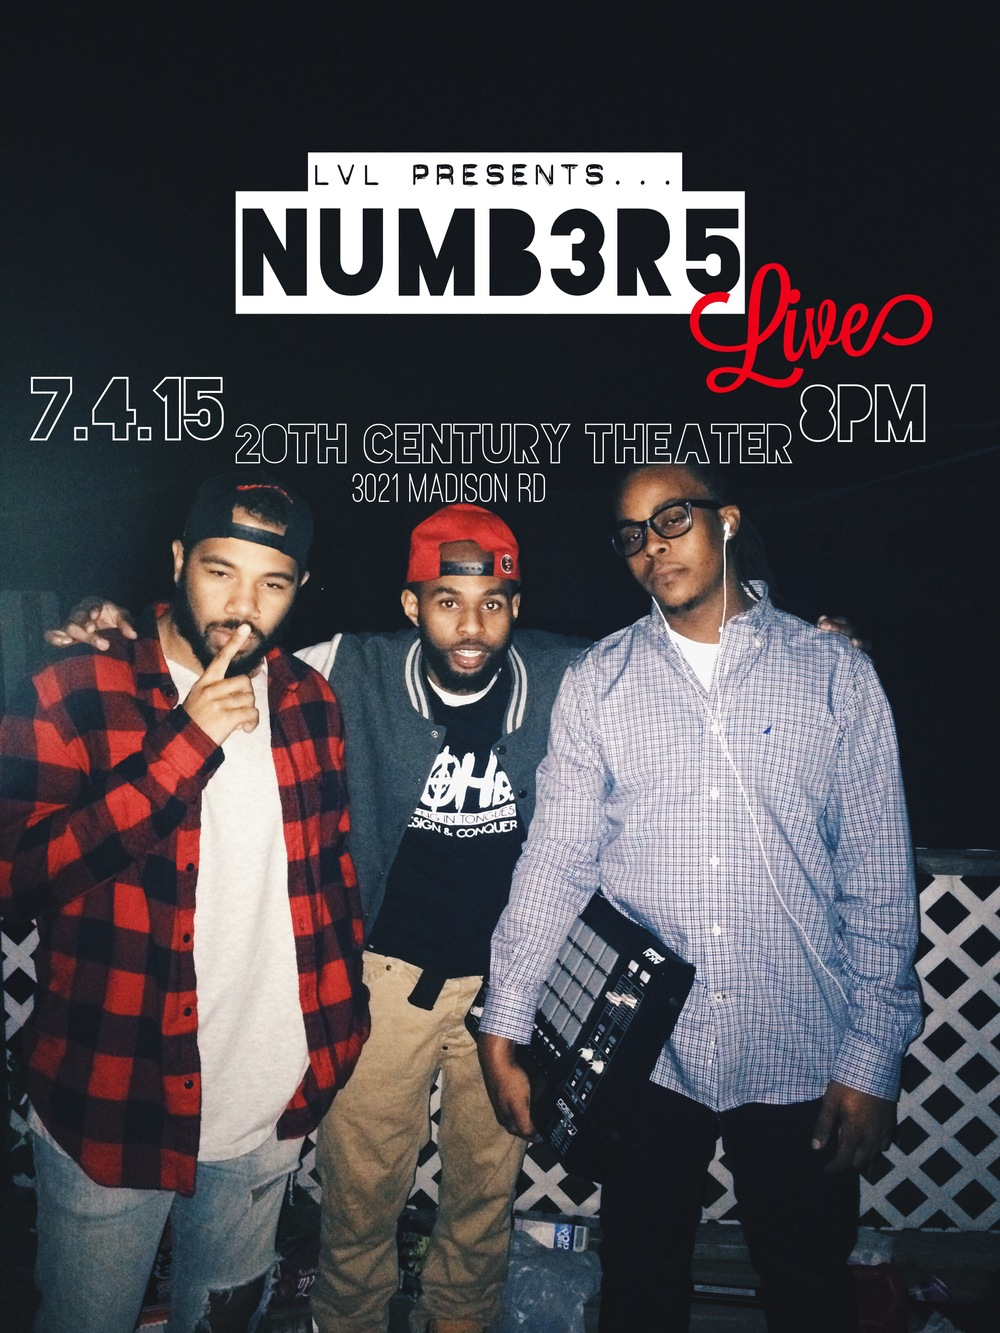 "LVL Presents Jon Schuyler and Ray Will LIVE July 4th, 2015 at The 20th Century at 3021 Madison Rd in Cincinnati, Ohio. They will be performing your favorite hits along with new material from their latest ""199X"" & ""1210"" EPs. Click Above to Purchase Tickets"